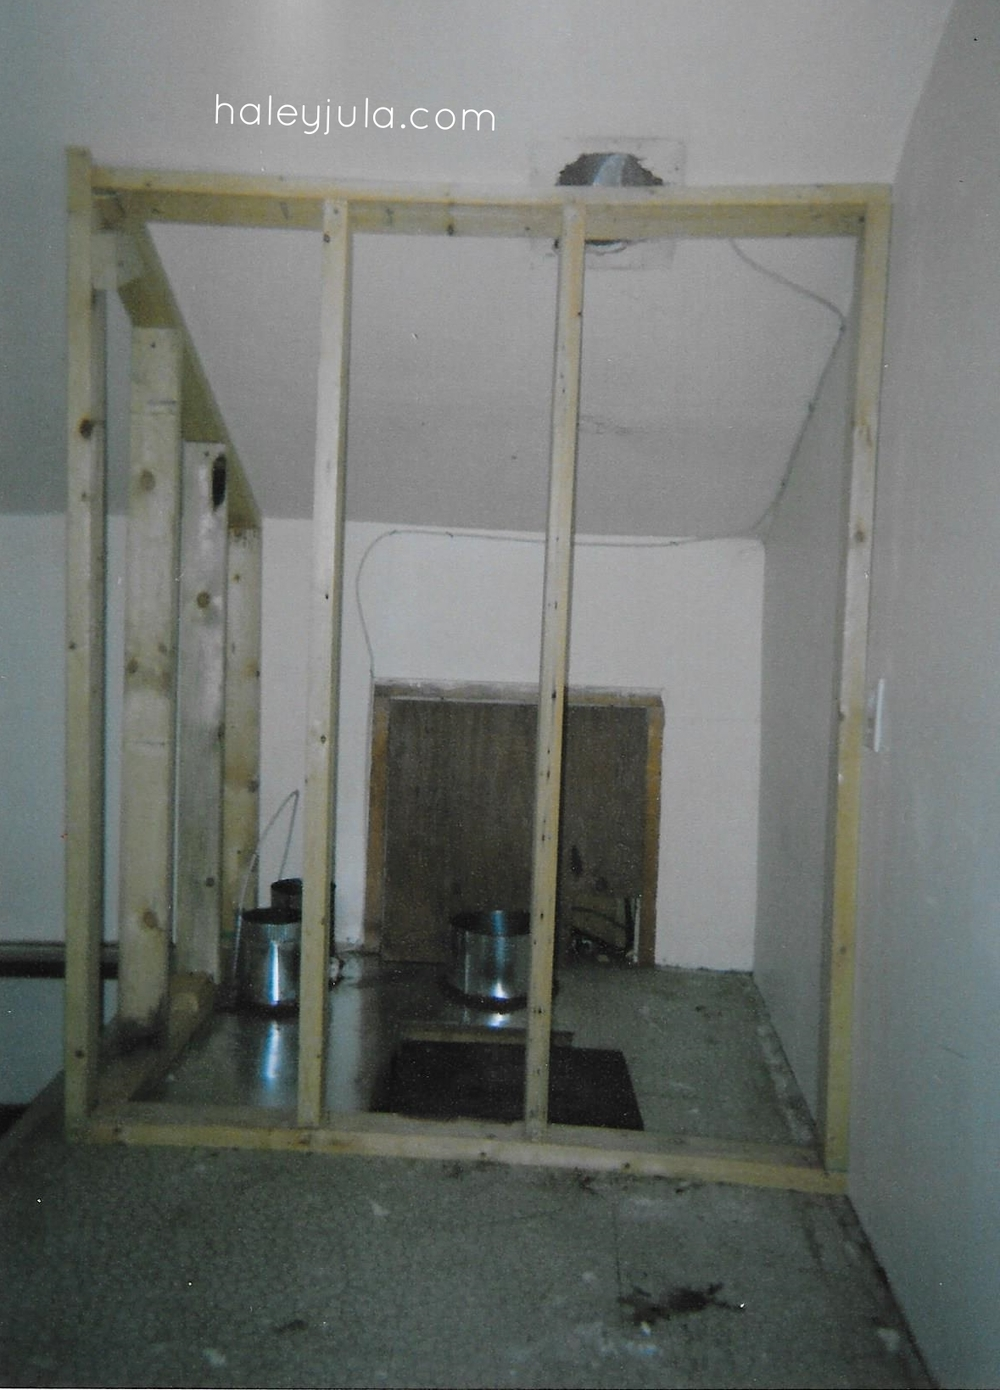 2008 when we purchased the house. This is the wall behind the desk. Todd built it to hide new heating ducts we had installed.